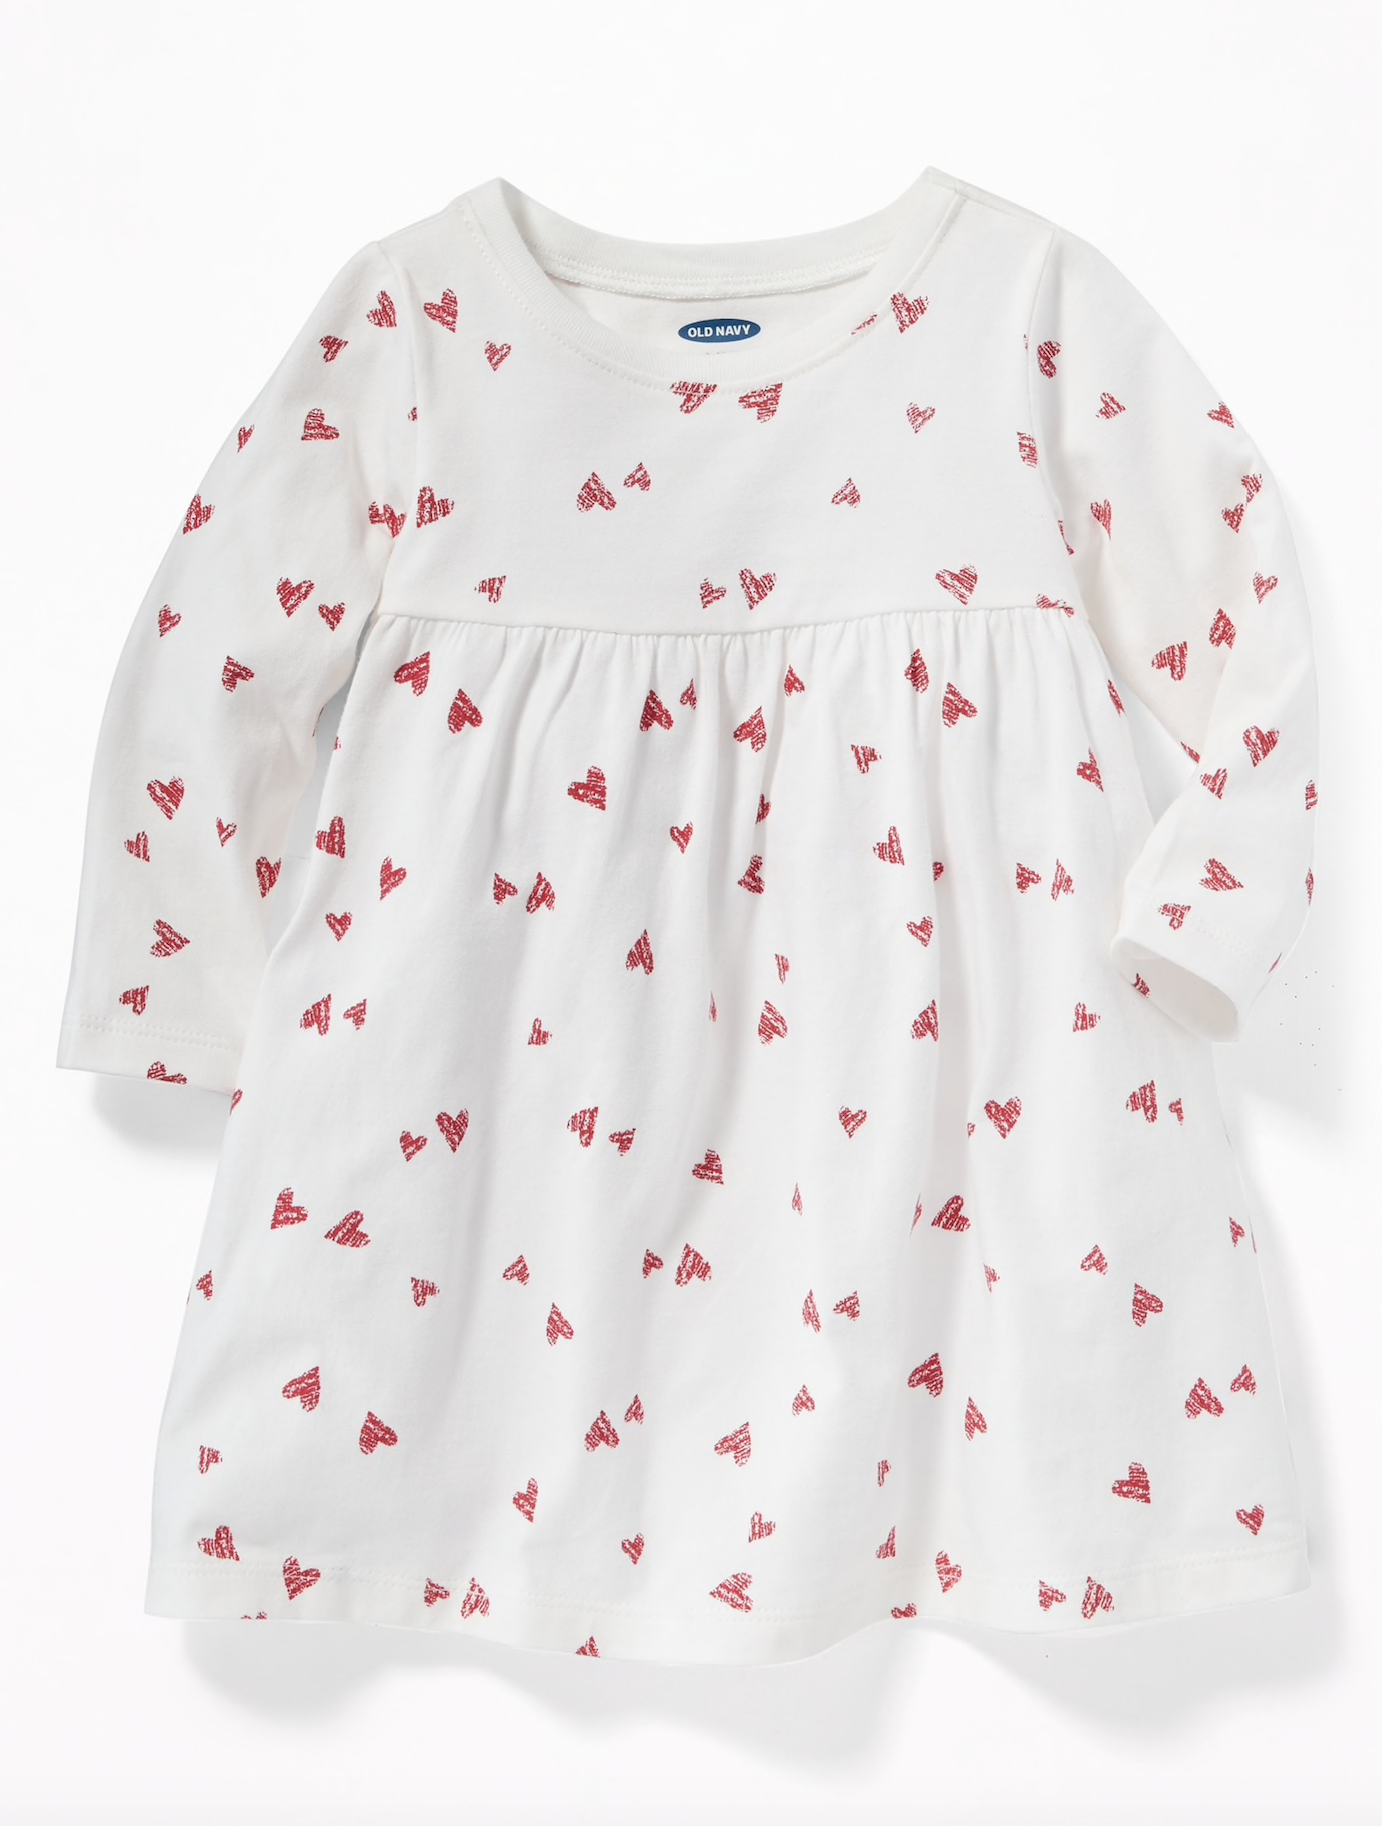 Empire Waist Heart Print Dress